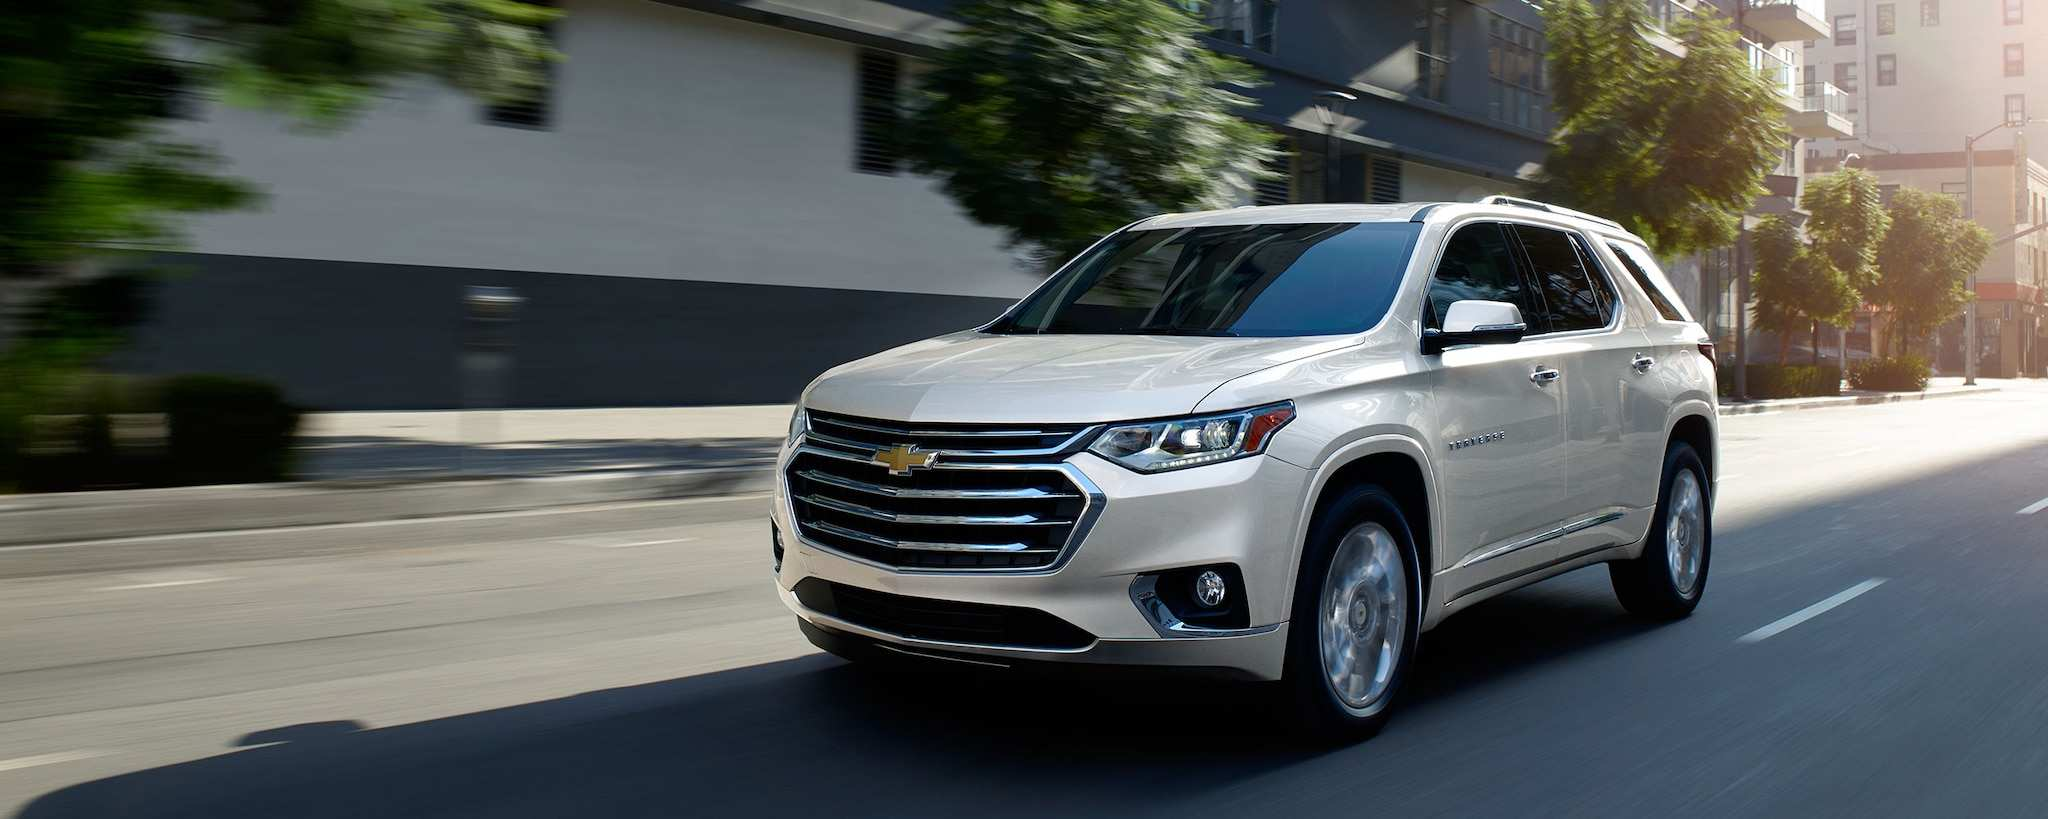 46 Best Review 2019 Chevrolet Traverses Concept by 2019 Chevrolet Traverses